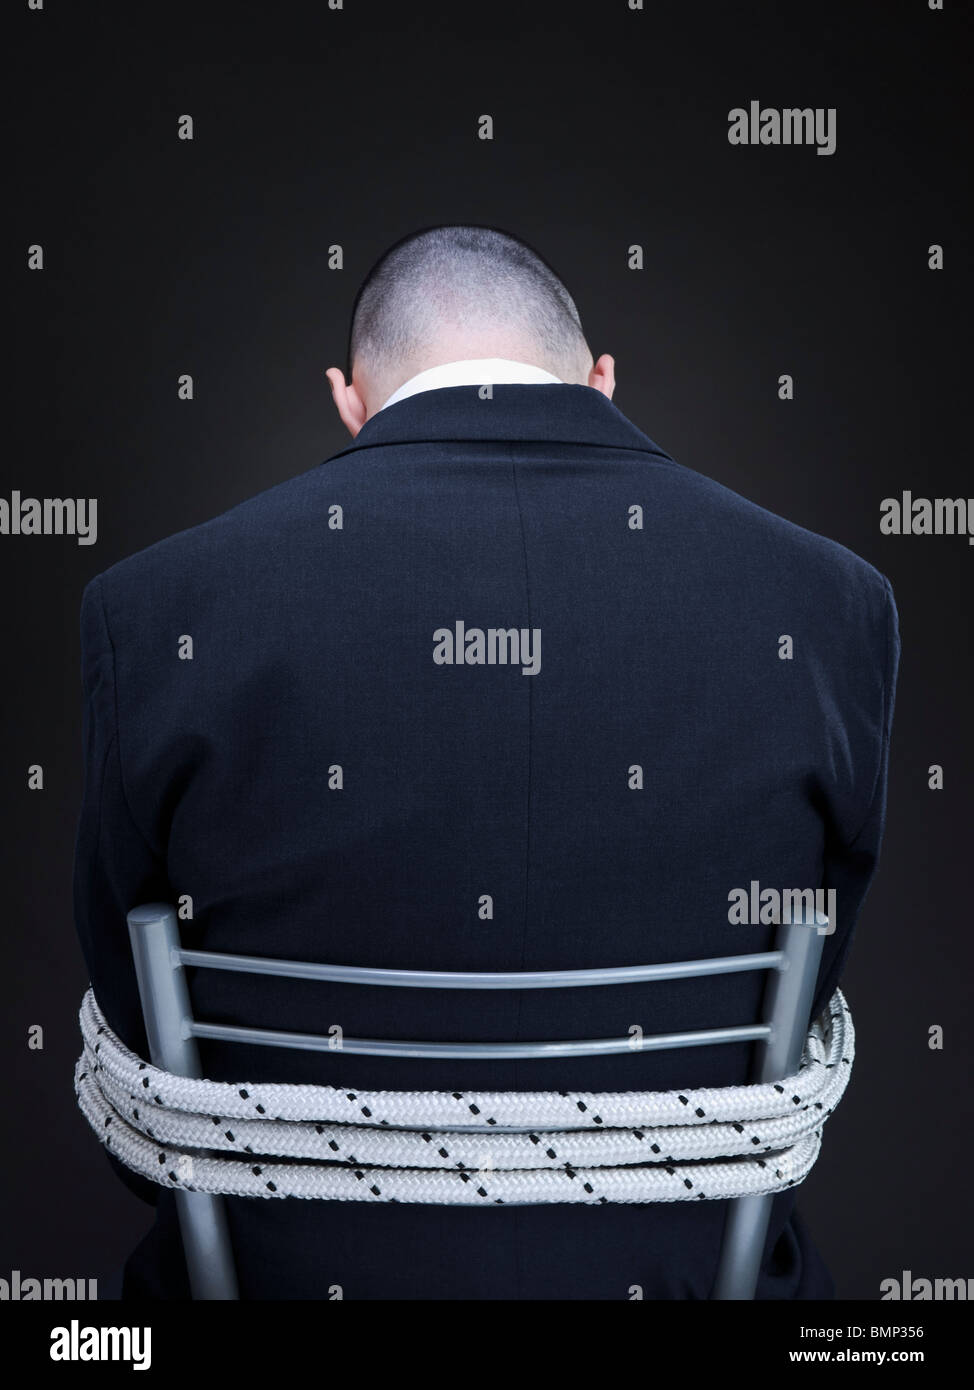 A businessman is tied up on a chair turning his back to the camera. Stock Photo